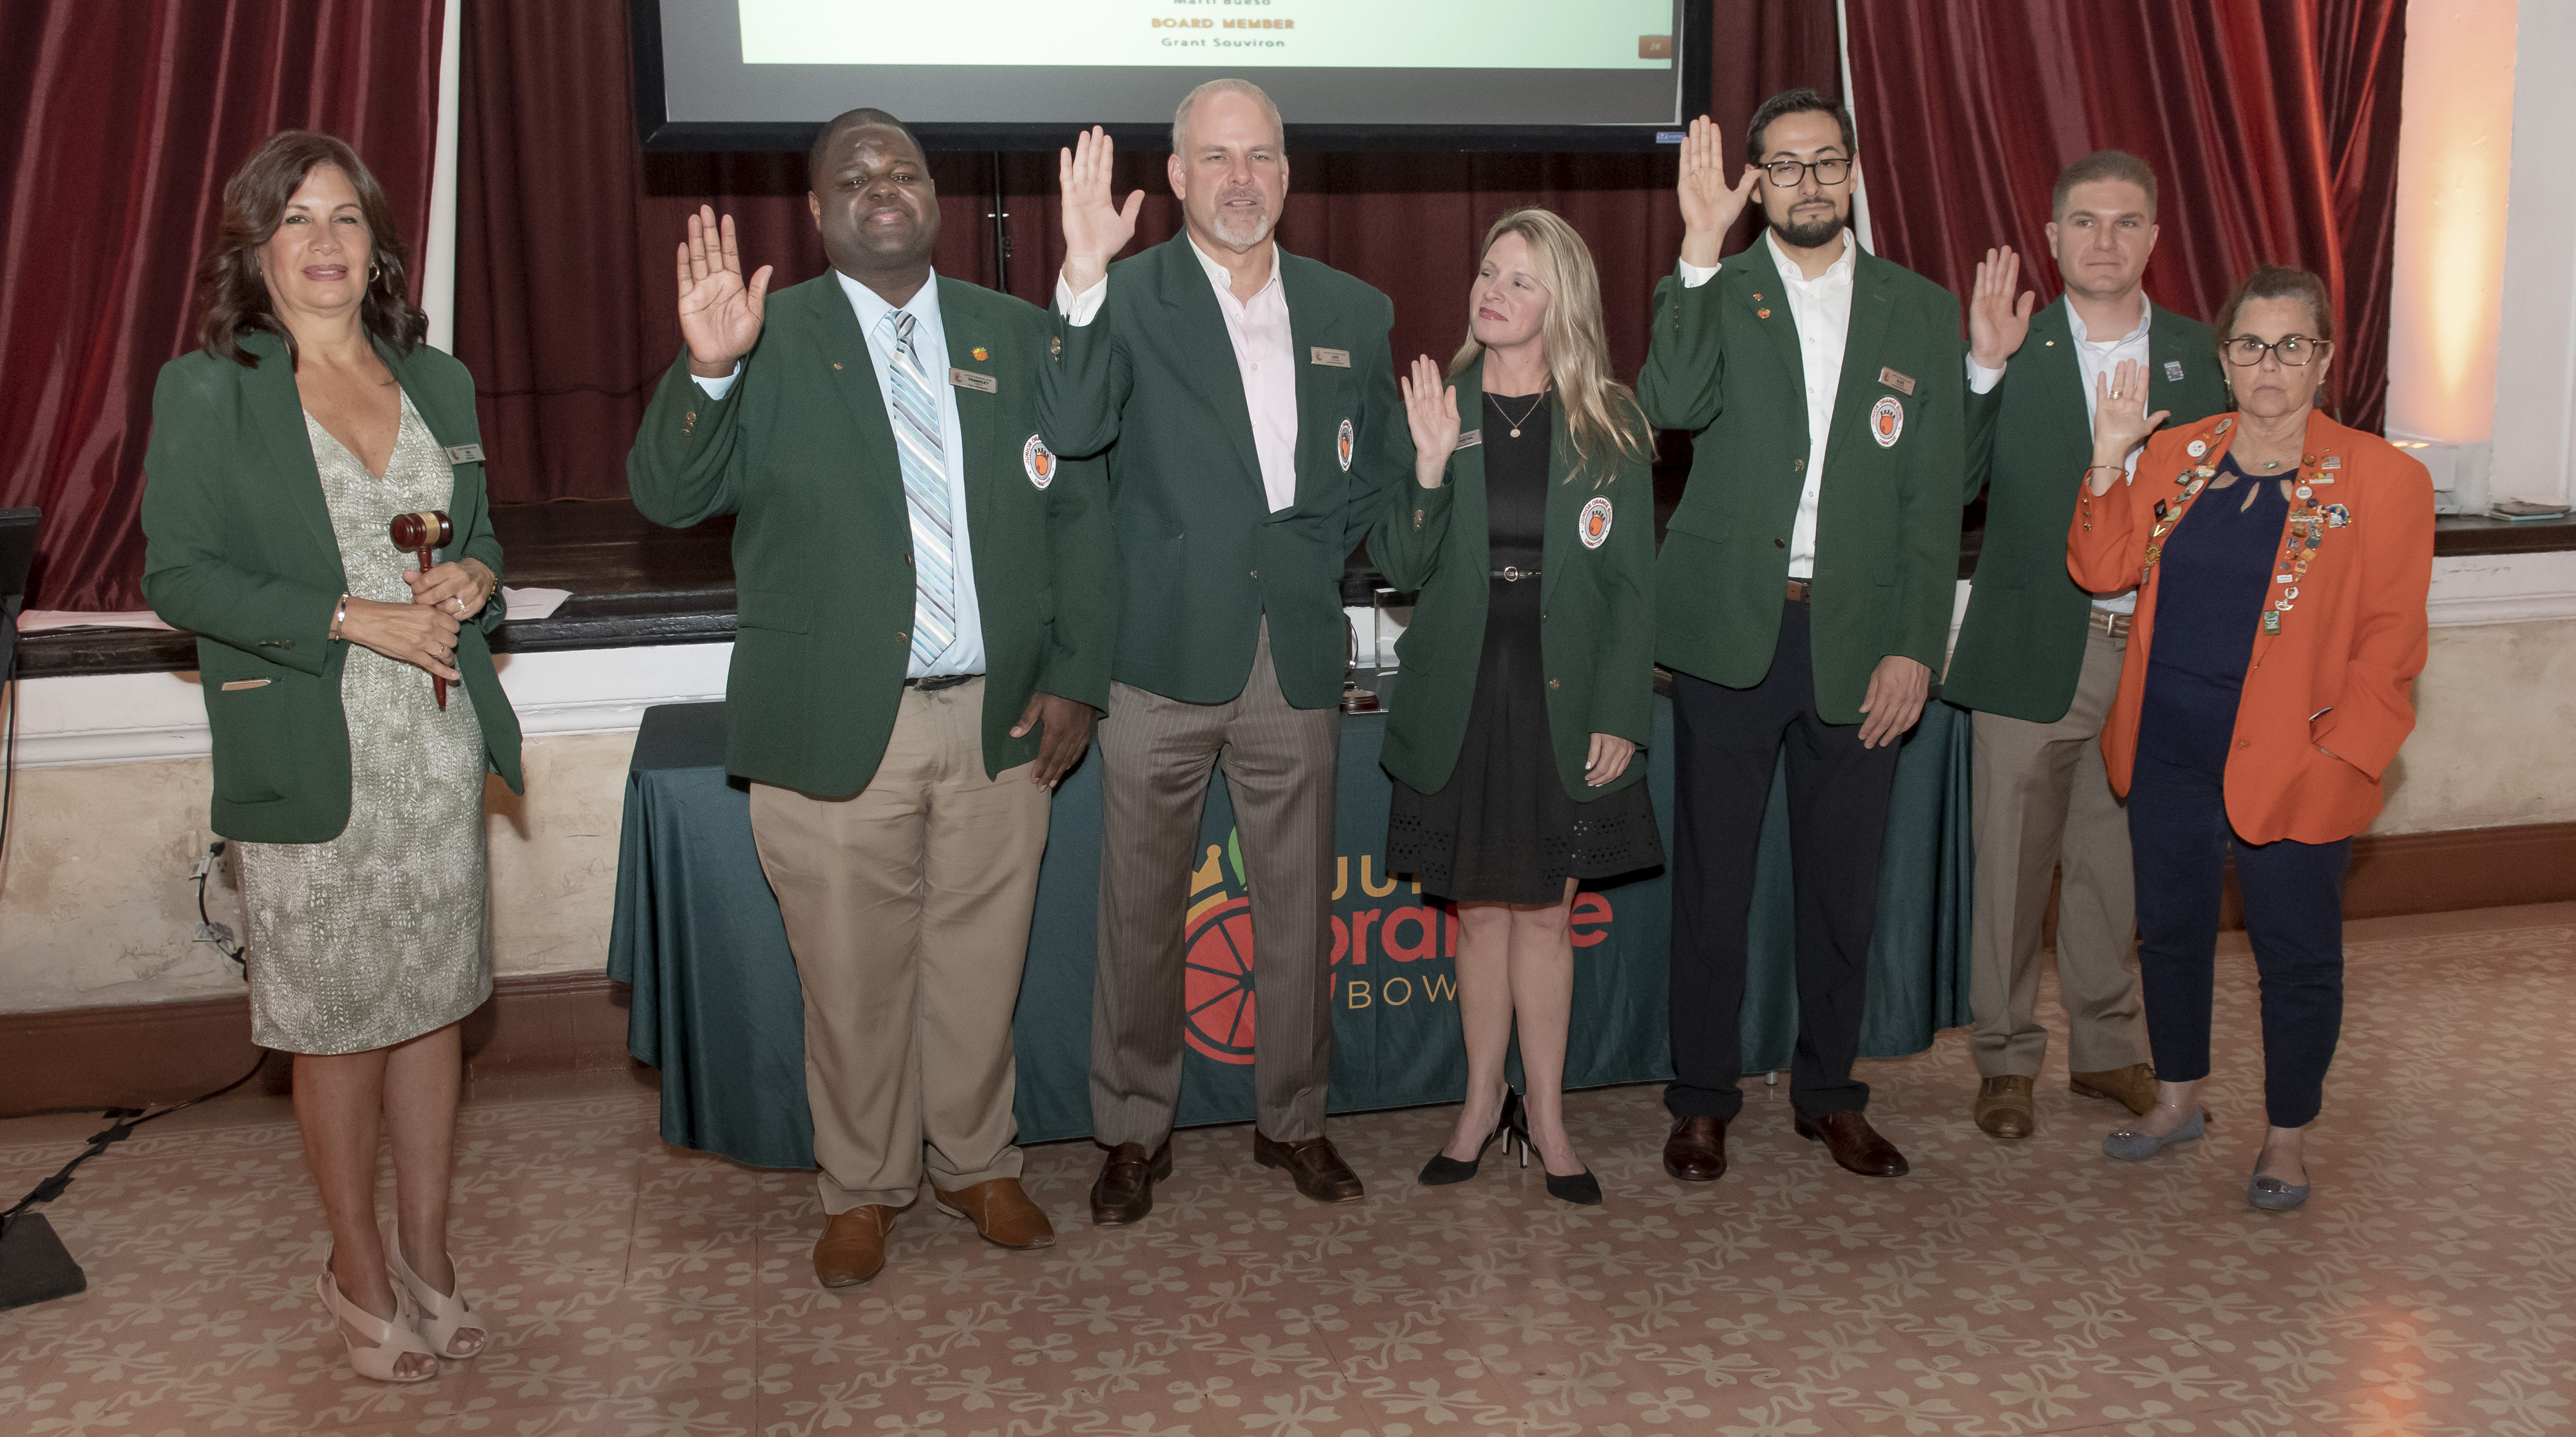 NEW JUNIOR ORANGE BOWL PRESIDENT INDUCTED AT BOARD INSTALLATION